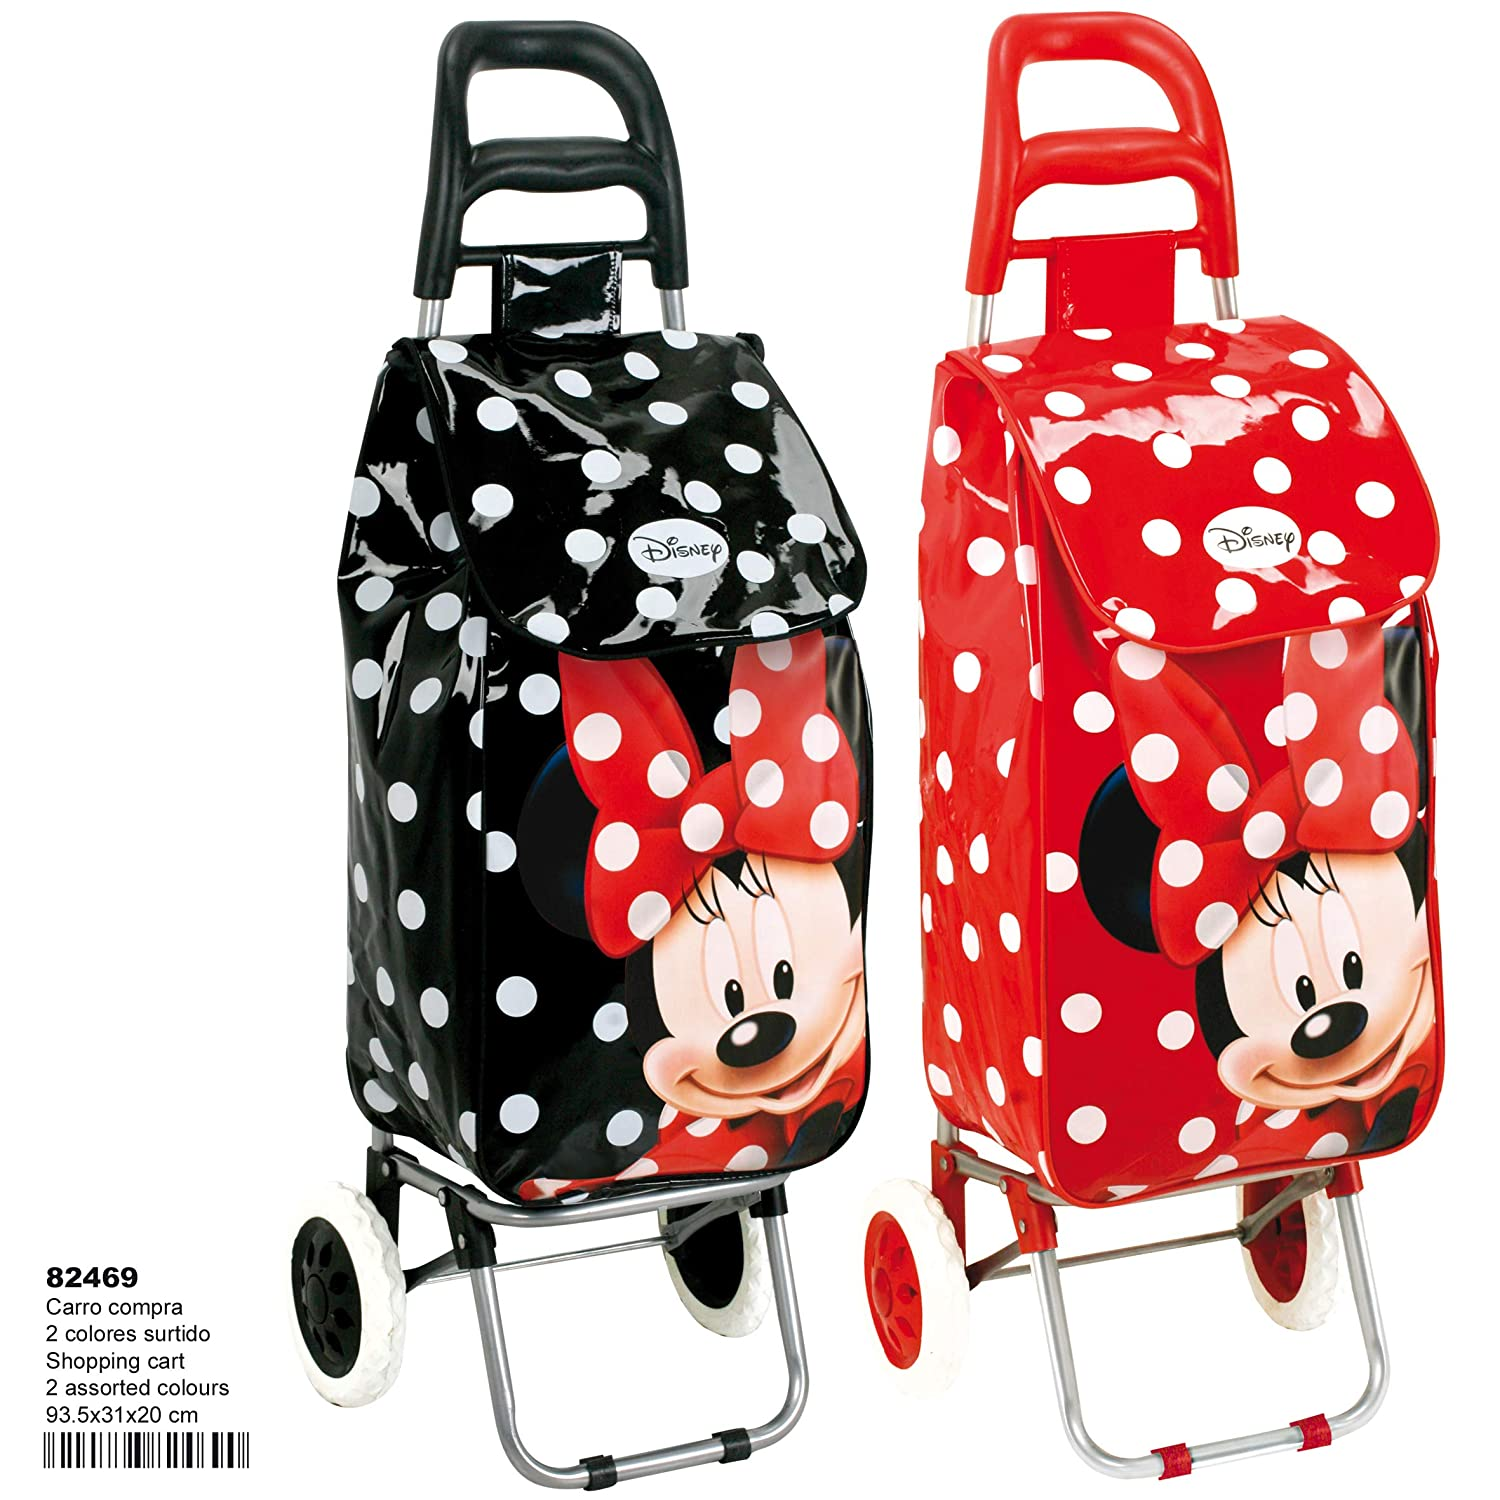 Montichelvo Montichelvo Shopping Cart MN 2 Cols. (23813) Bolsa Escolar, 93 cm, (Multicolour): Amazon.es: Equipaje